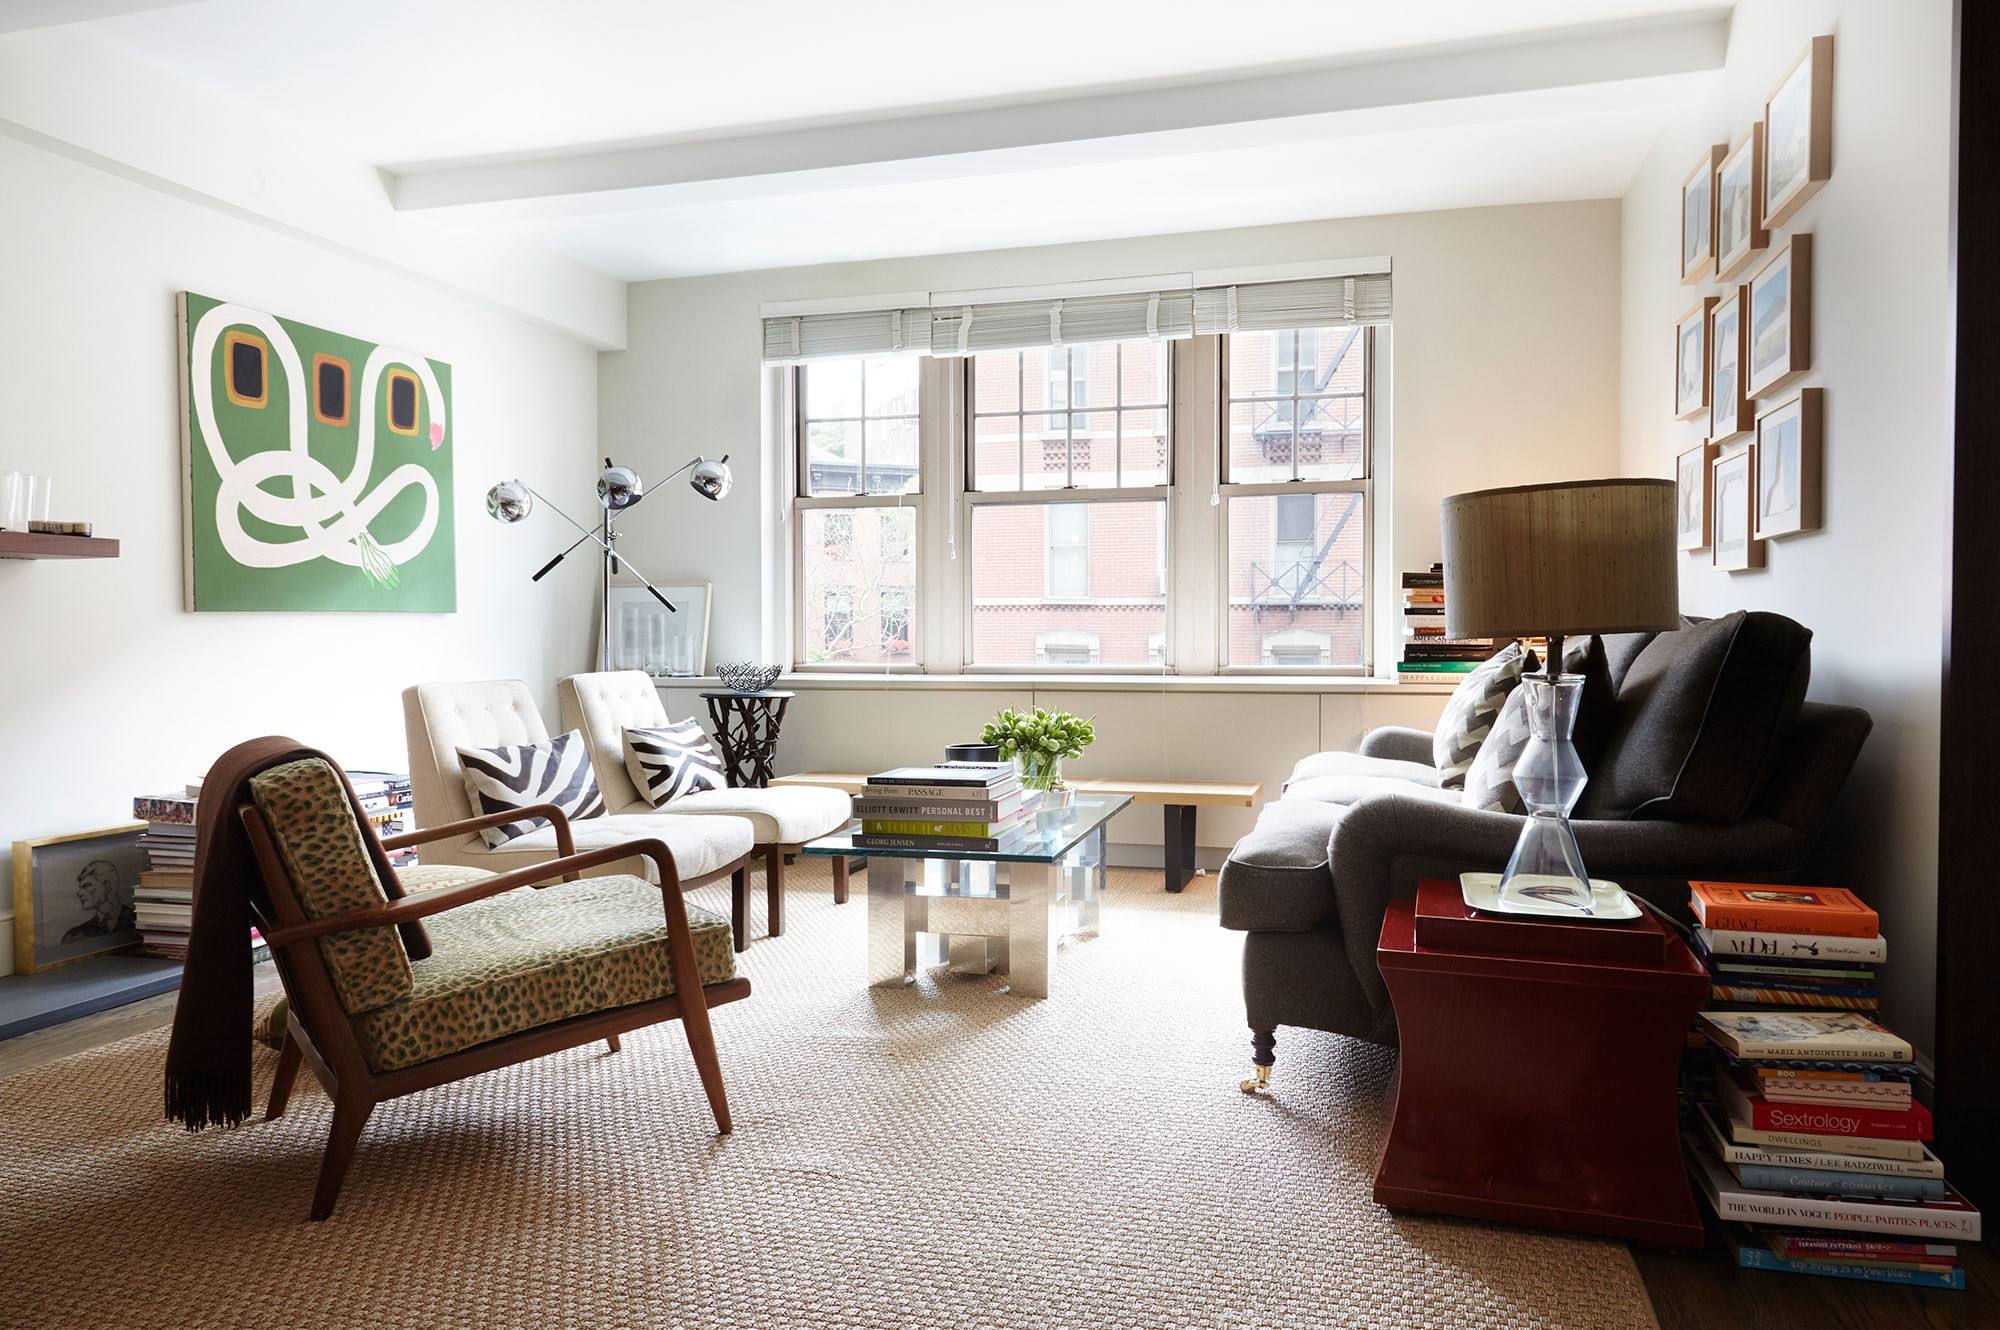 Delightful Peter Somu0027s New York City Apartment. Generous Seating In The Living Room  Allows For Stylish Entertaining.